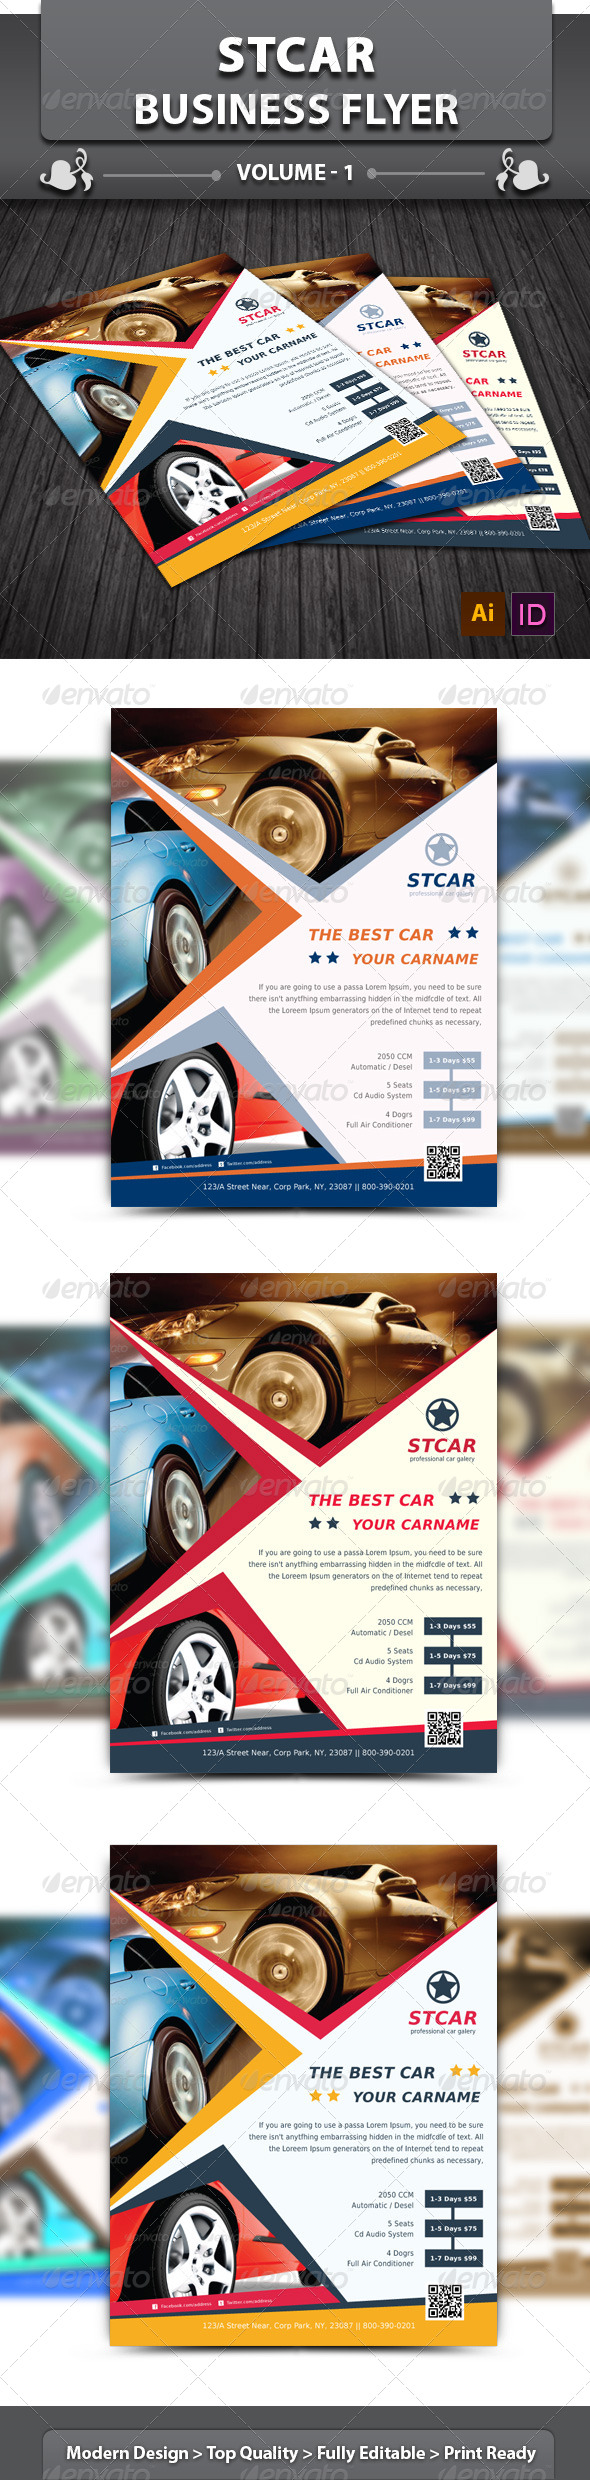 Automobile Business Flyer | Volume 1 - Corporate Flyers